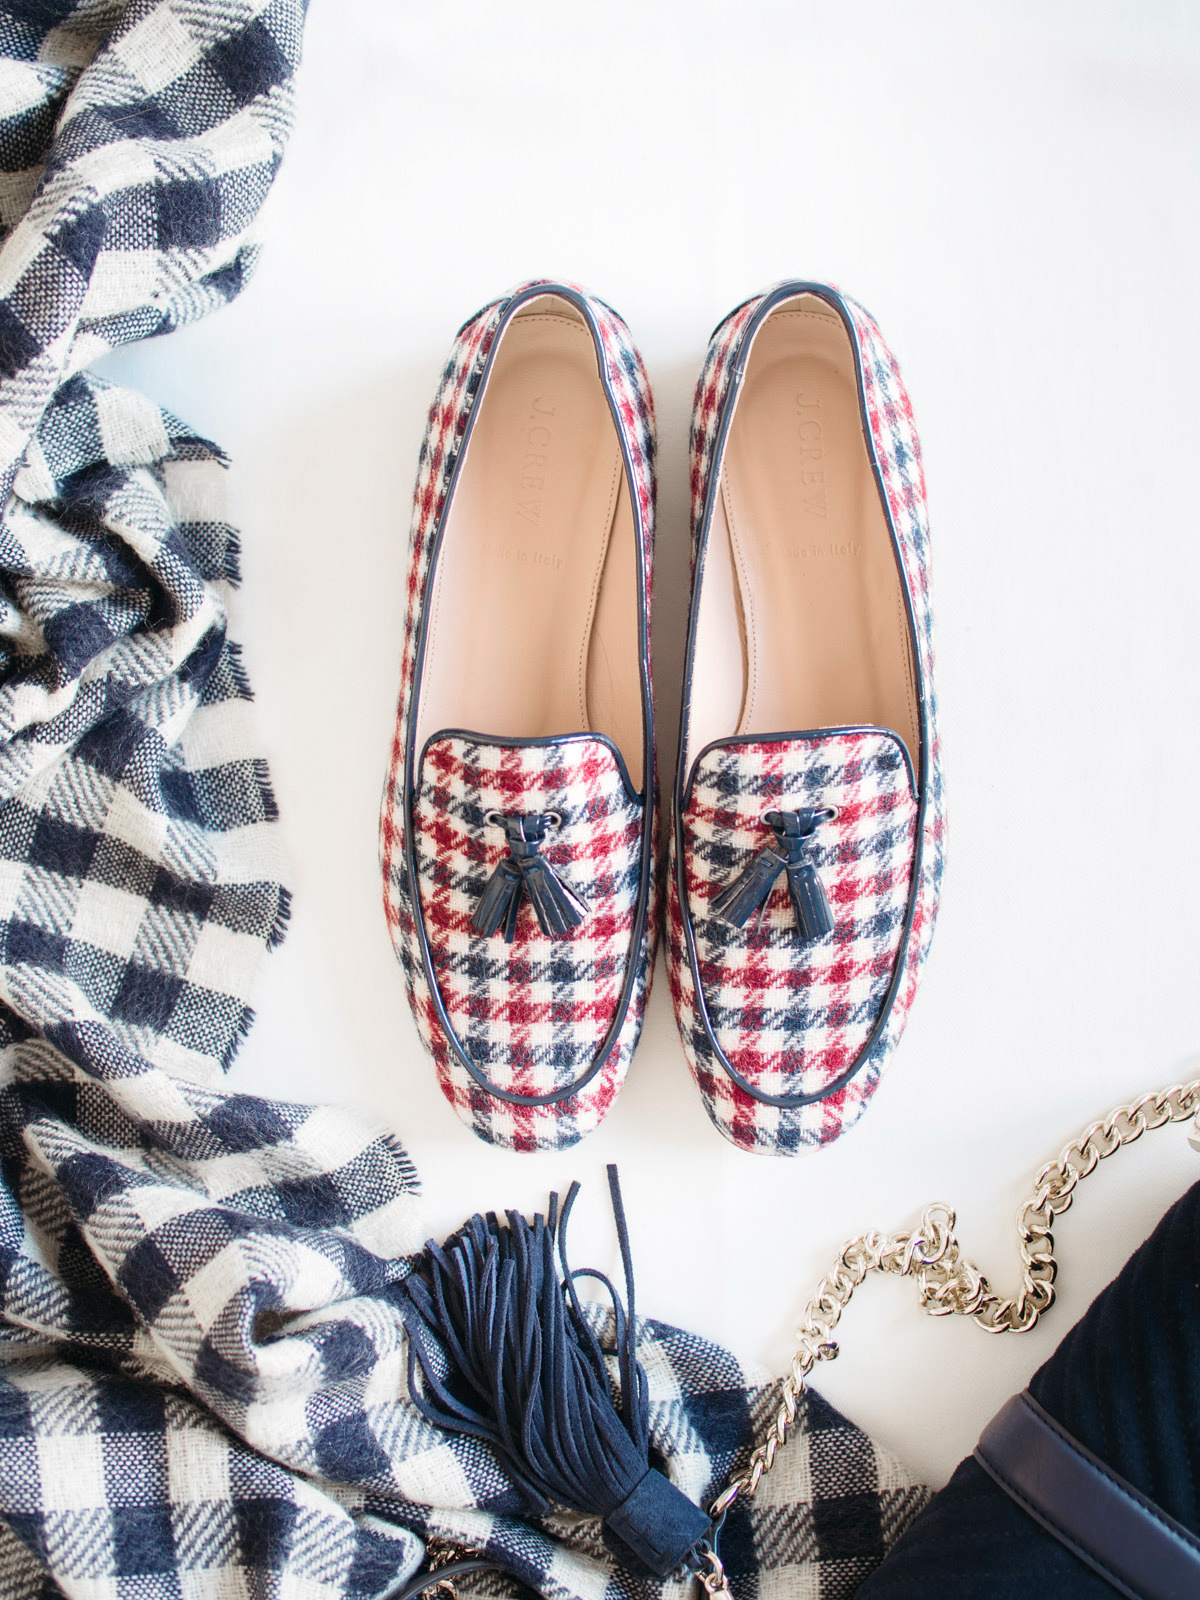 Blog-Mode-And-The-City-Lifestyle-Cinq-petites-Choses-192-mocassins-charlie-jcrew